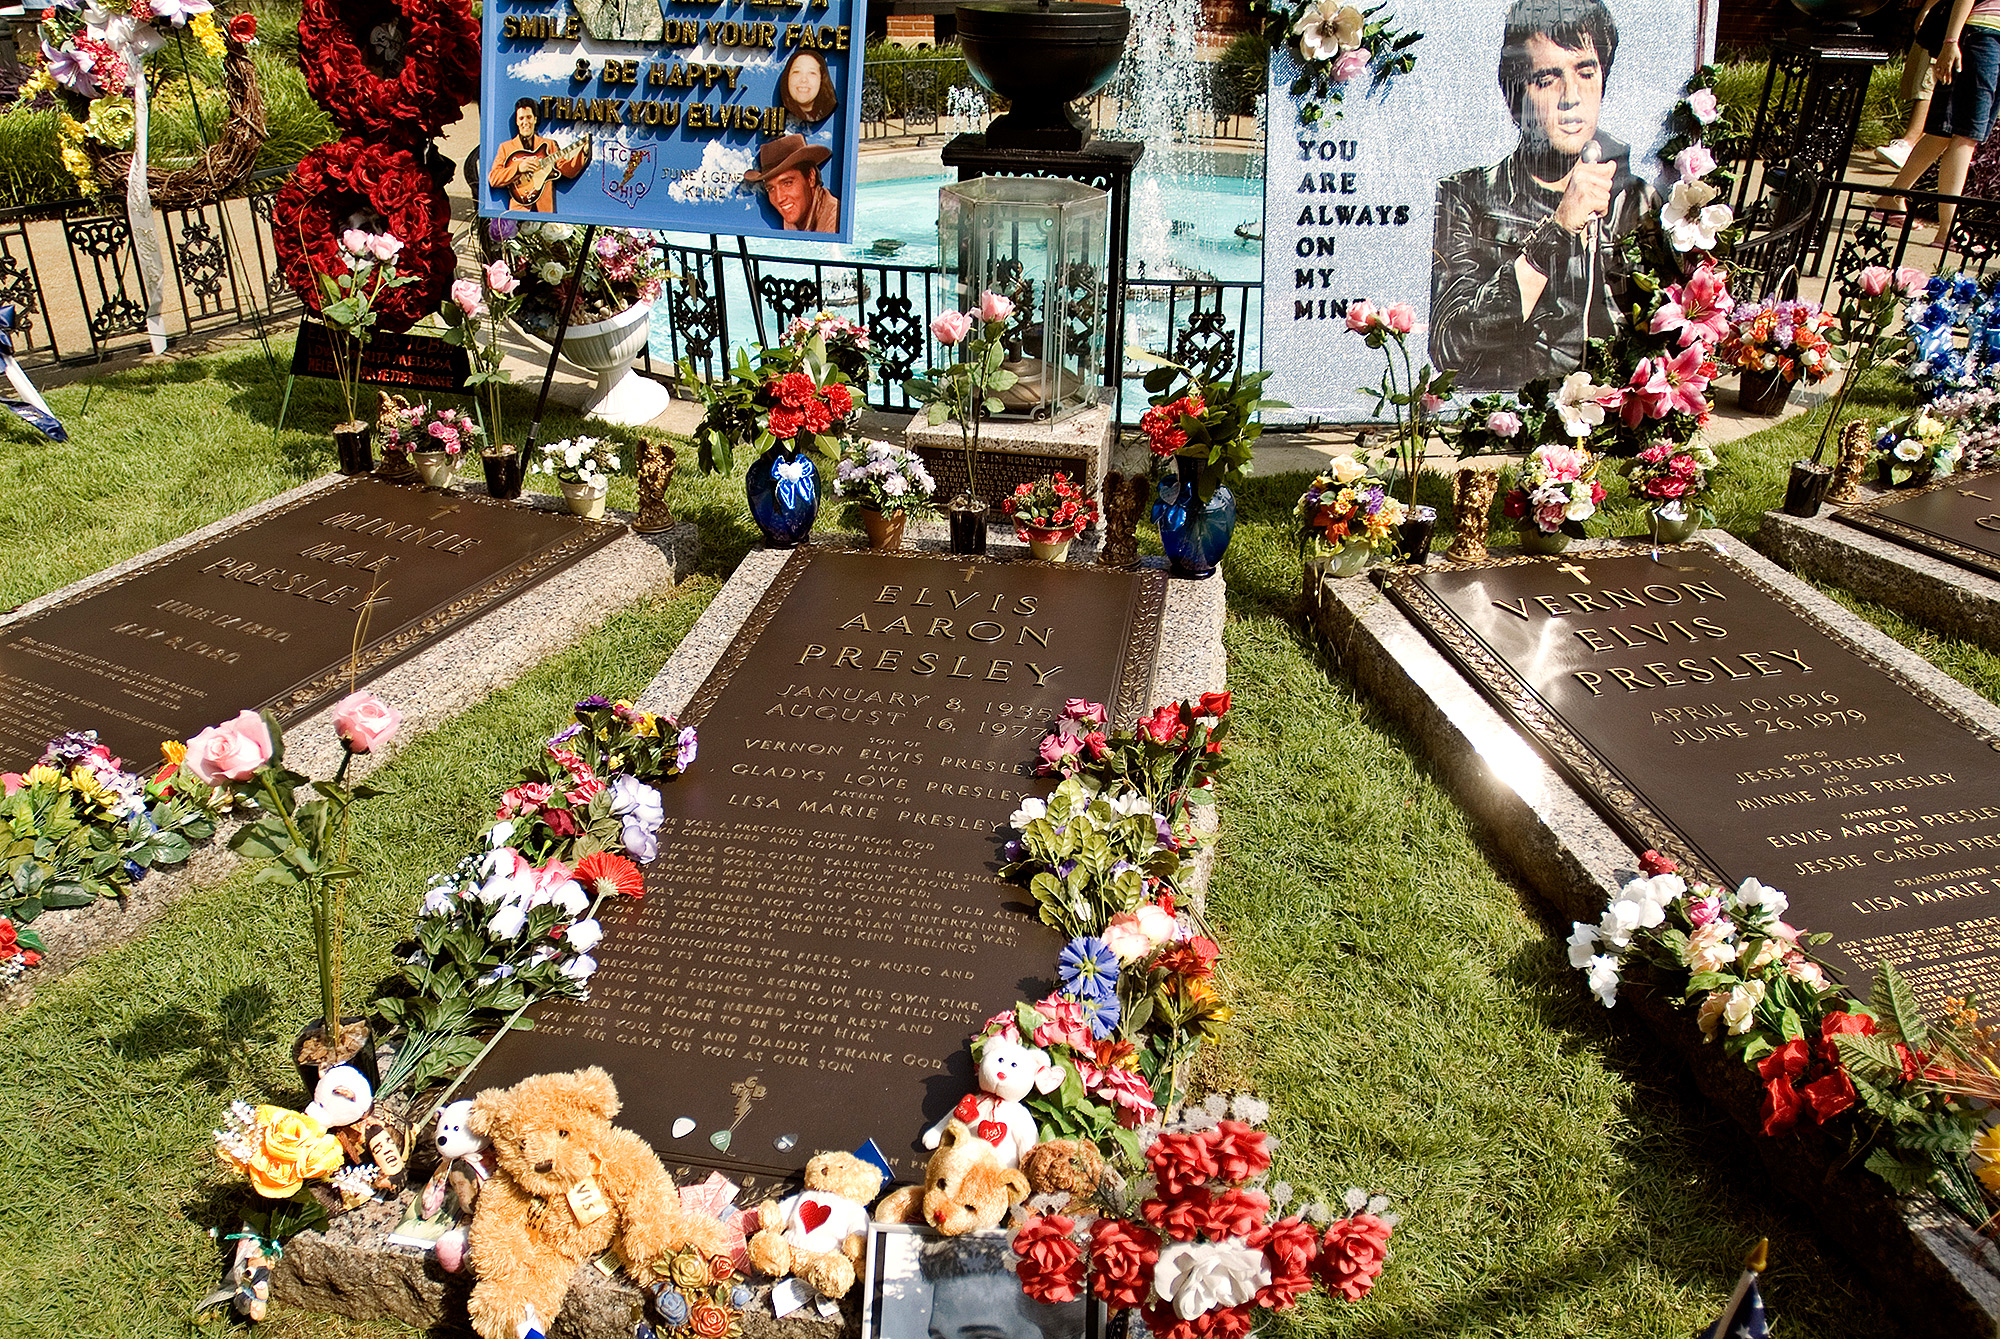 HIS BODY WAS MOVED TO GRACELAND AFTER THIEVES TRIED TO STEAL IT